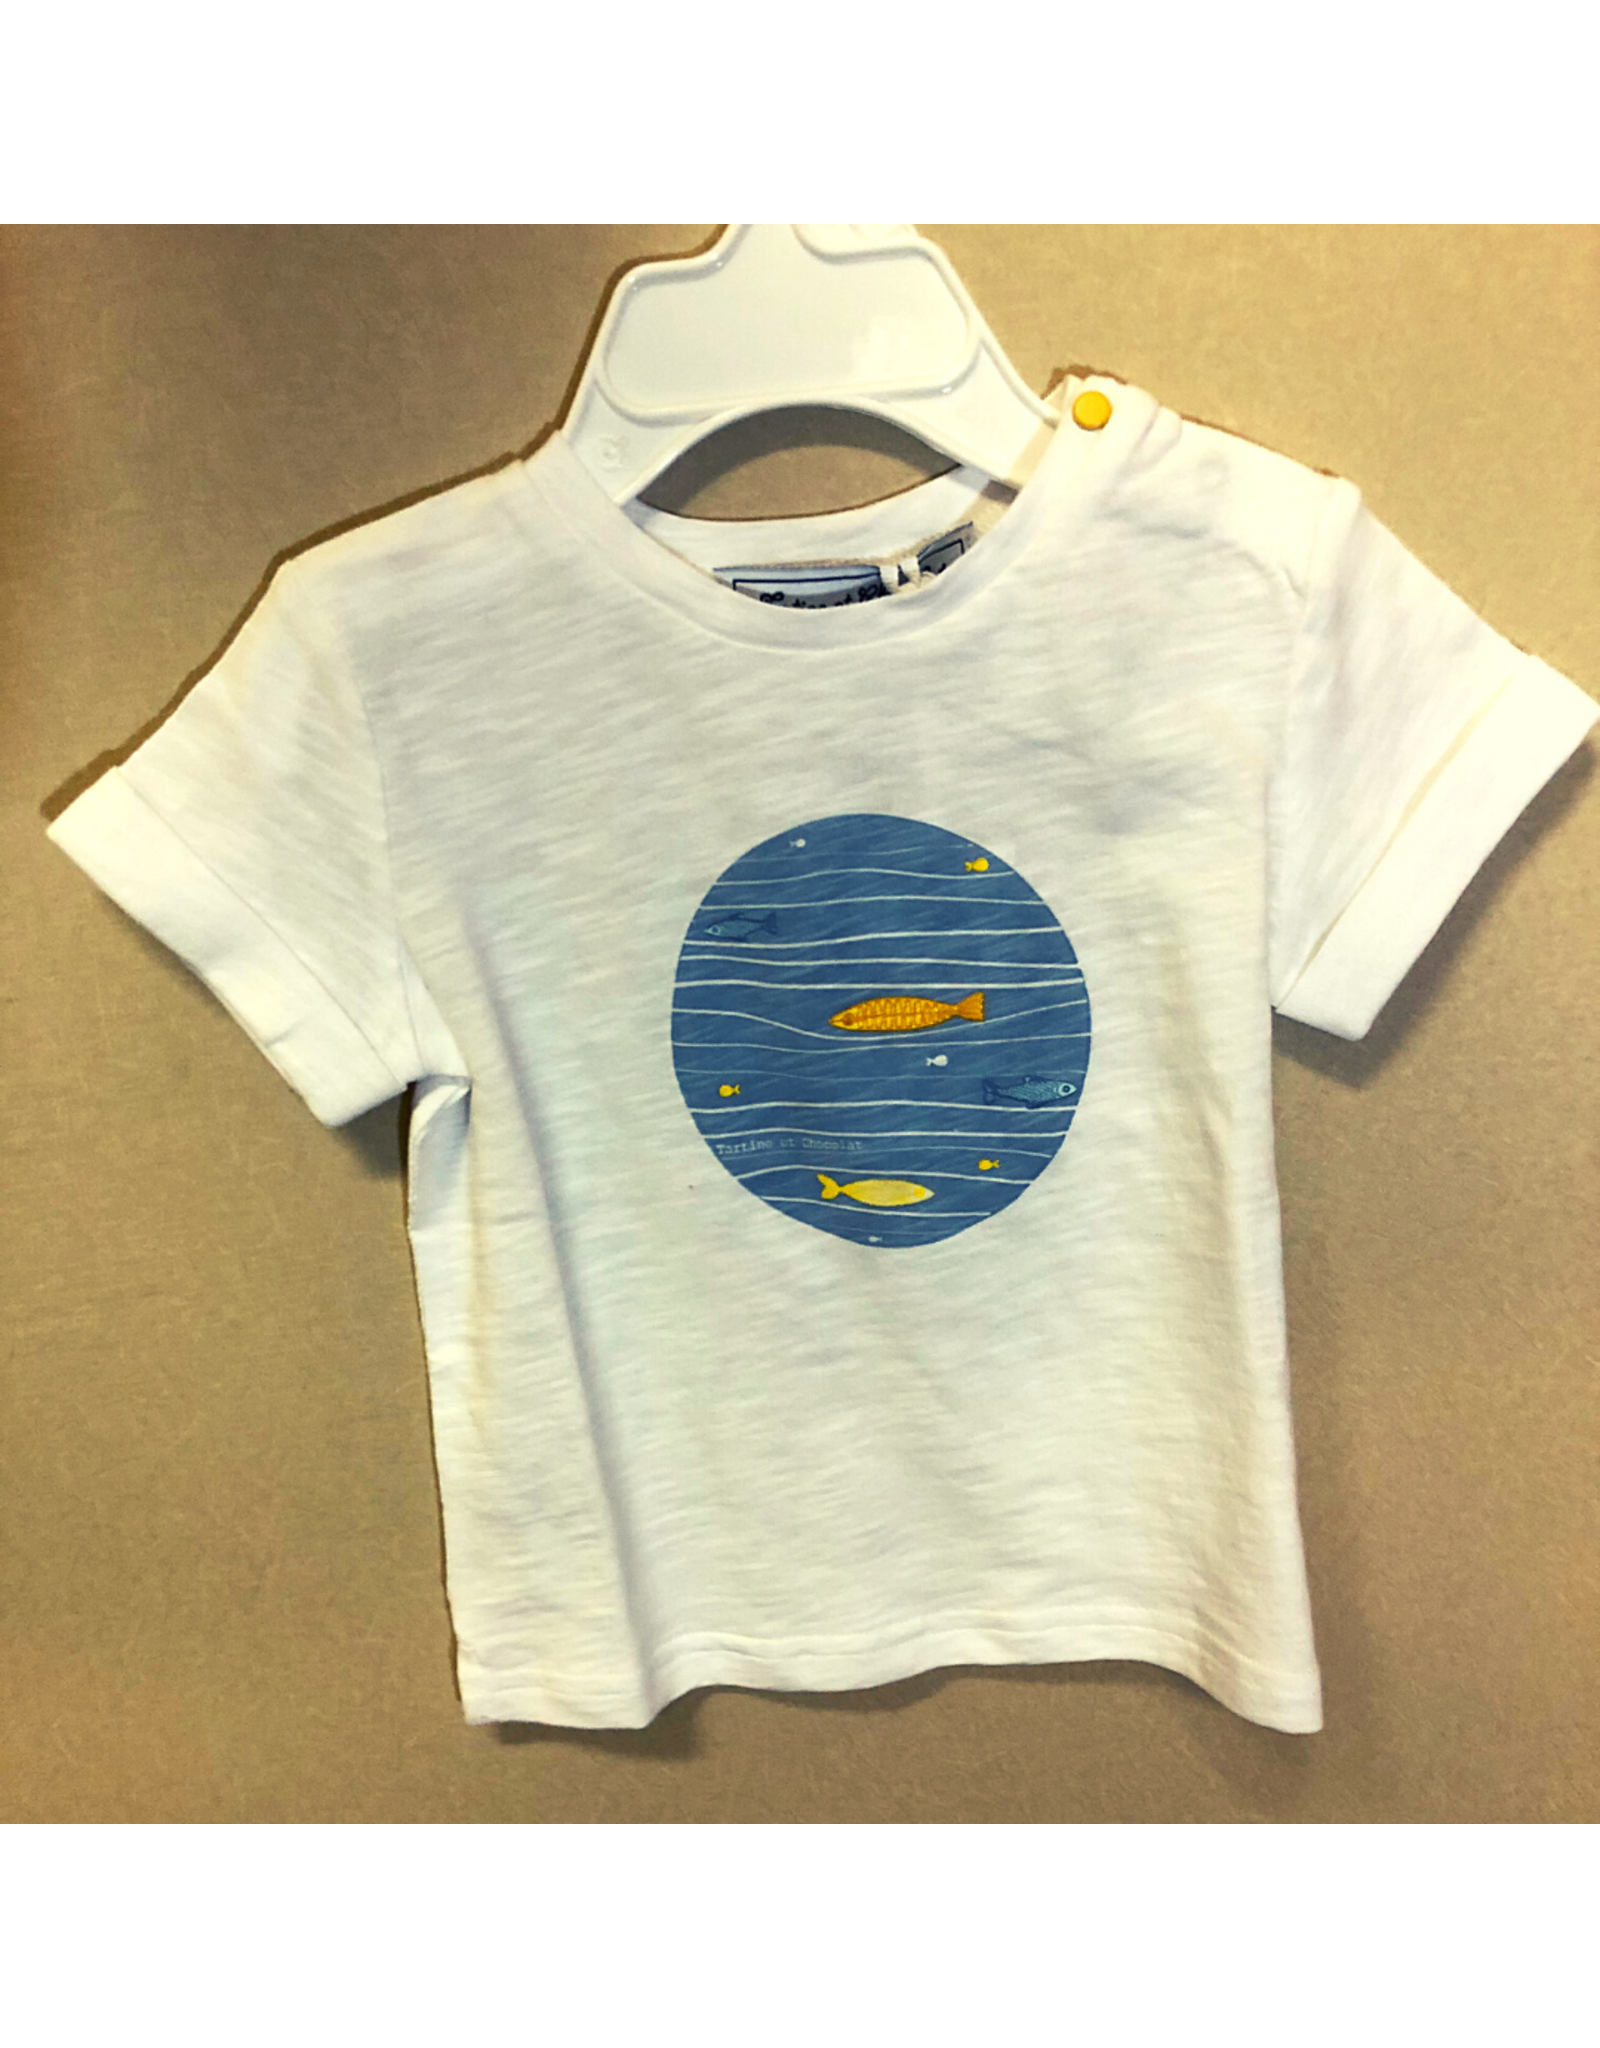 Tartine Et Chocolate Fish in Ocean T-Shirt with Cuff Sleeves